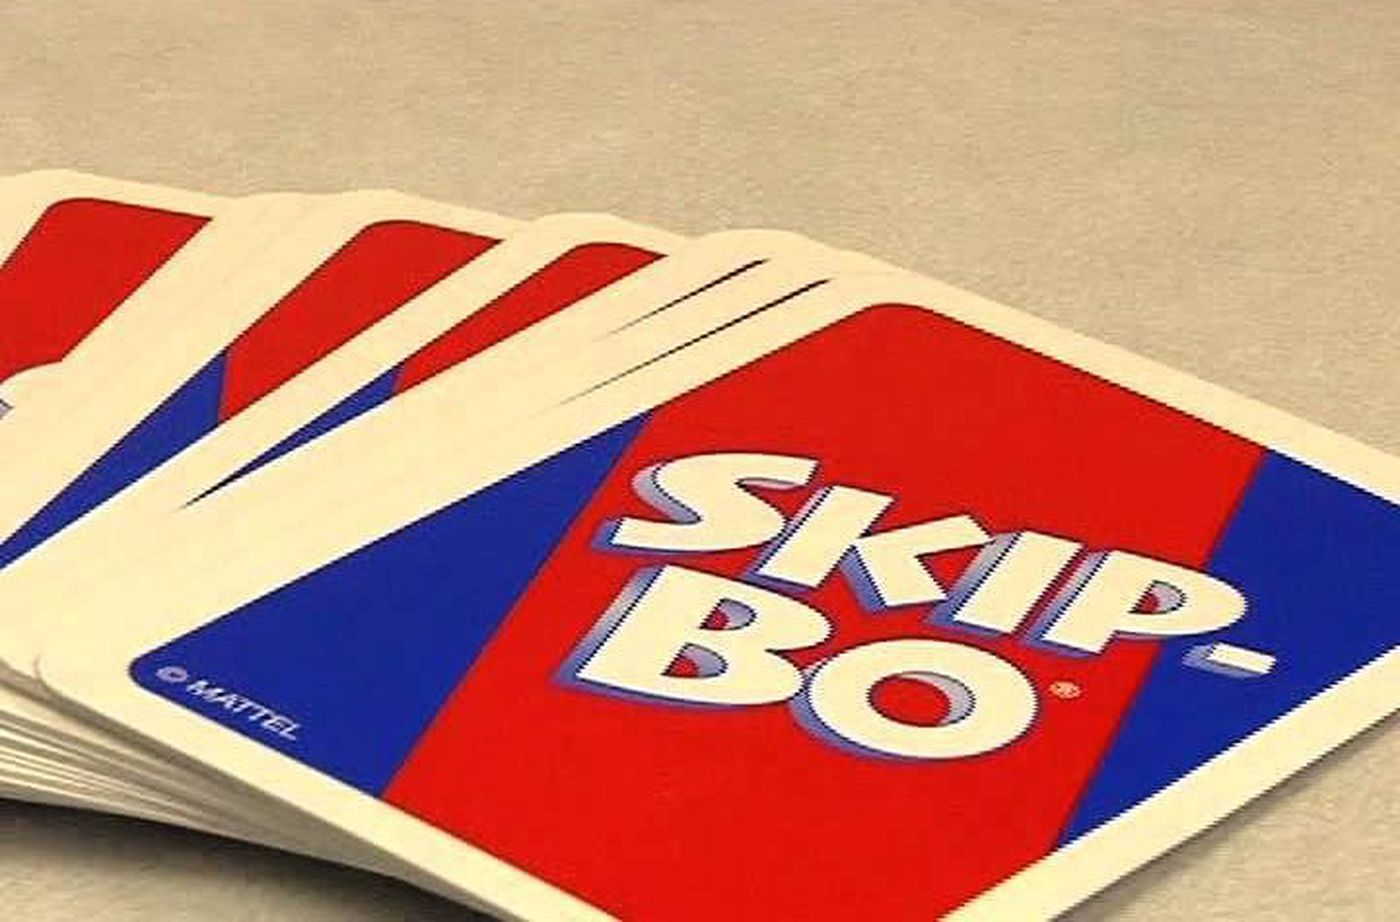 Skip Bo Game Invented In Brownfield